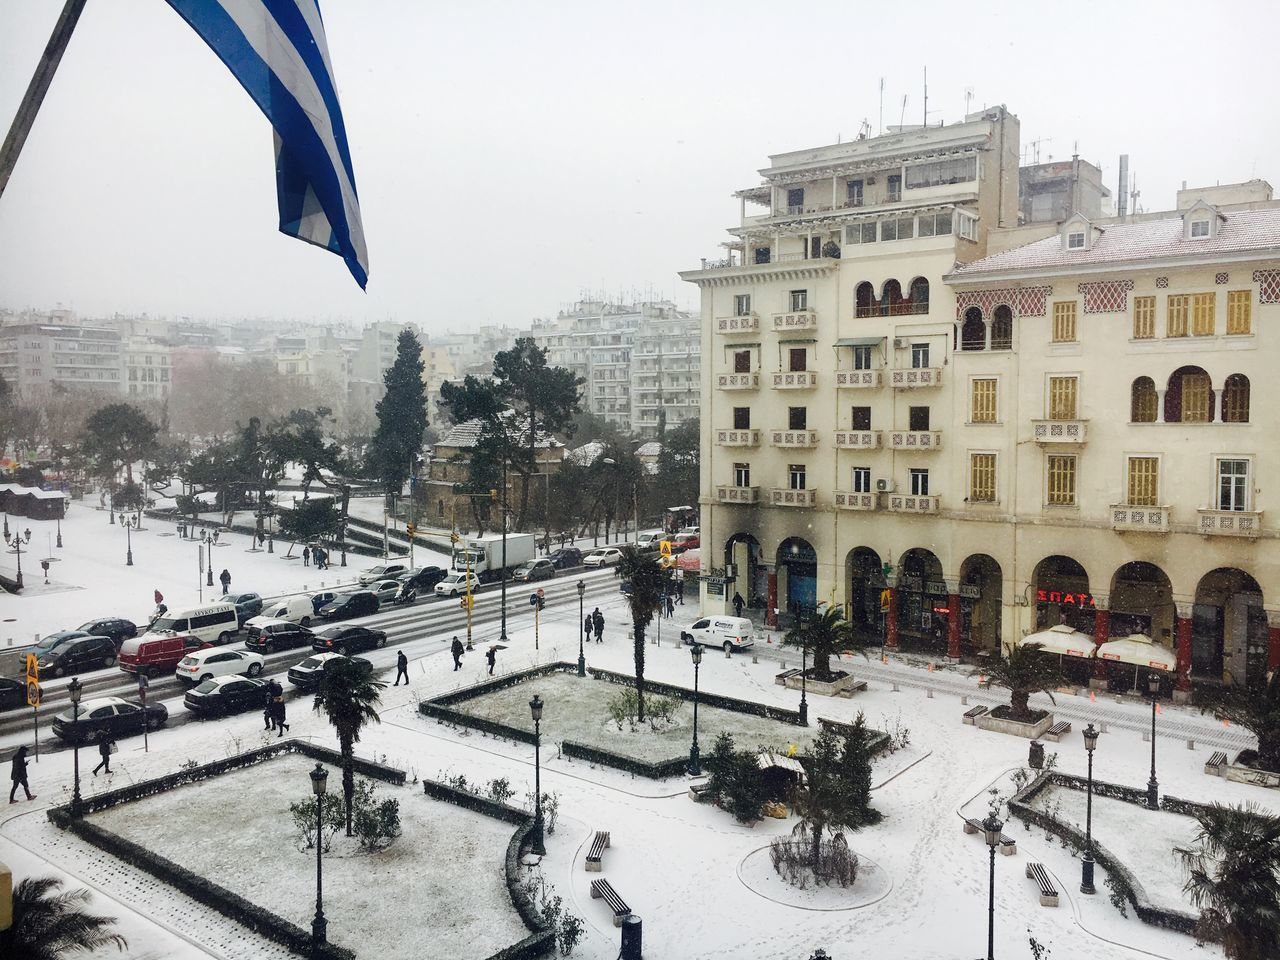 Thessaloniki, Greece snowfall at Aristotelous main square. Aristotelous Square City Cold Temperature Fall Of Snow Outdoors Snow Snow Day Snow Flakes Snow Landscape  Snow Scene  Snow White Snow ❄ Snowing Thessaloniki Thessaloniki Greece Weather